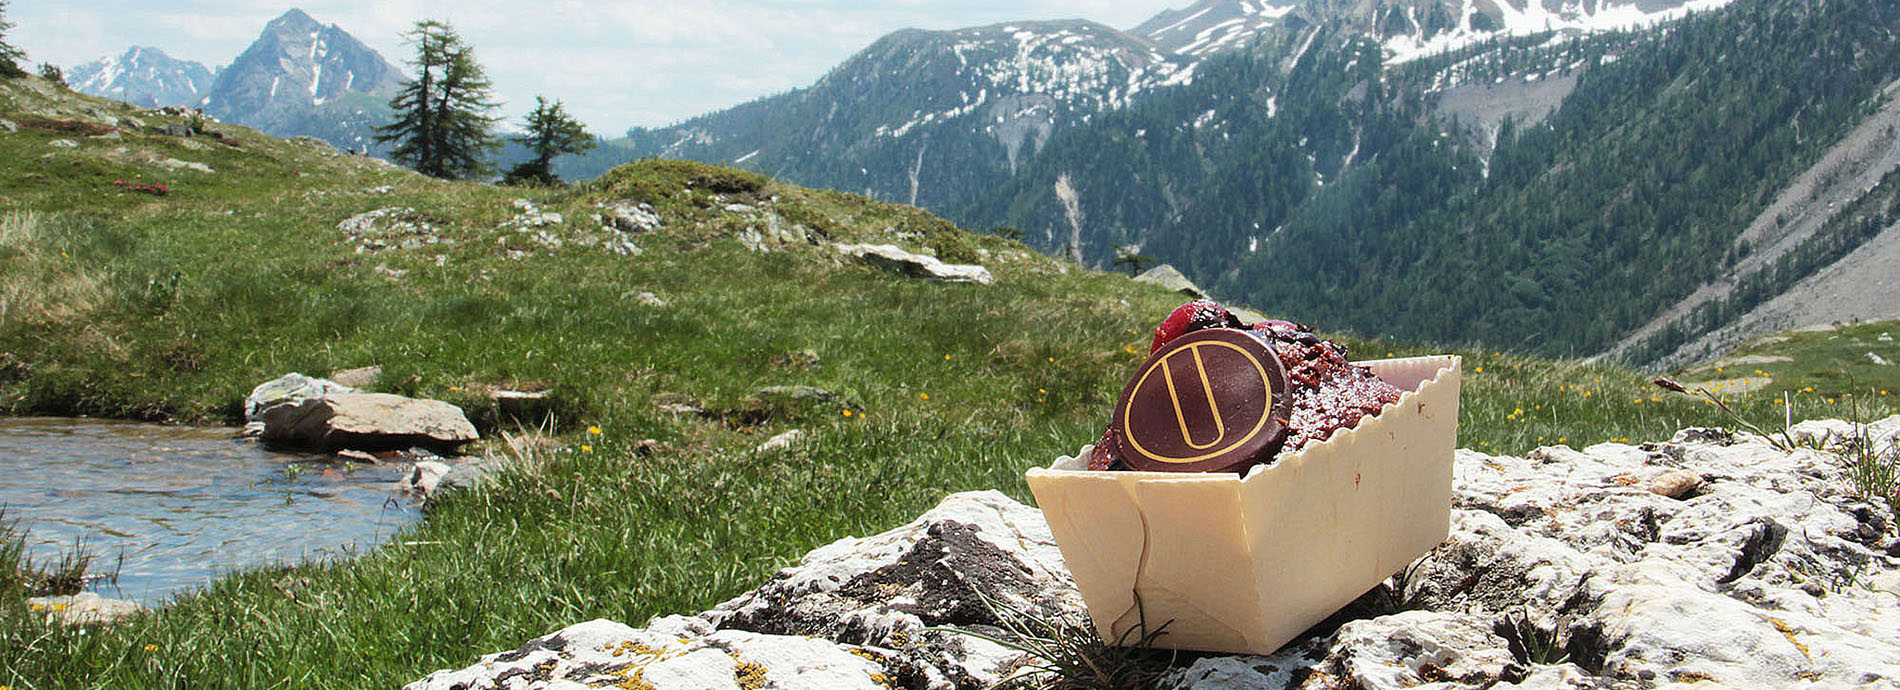 Mountain flavour in Valle Stretta (literally Narrow Valley) - Mountain desserts Pasticceria Ugetti Bardonecchia